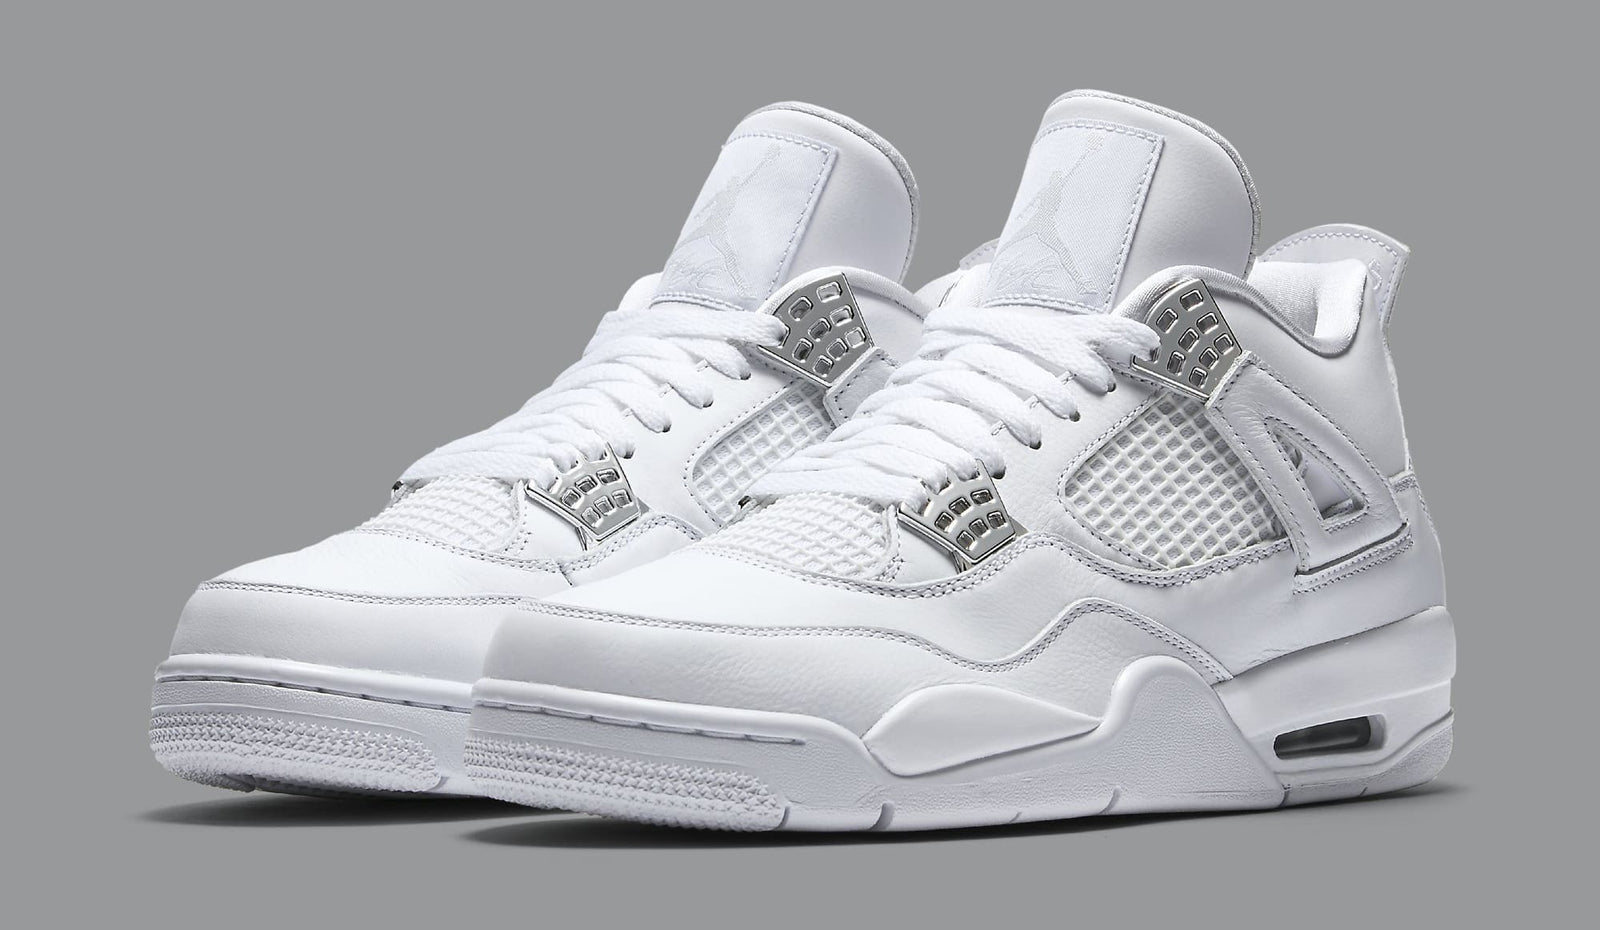 Nike Air Jordan Retro 4 IV Pure Money 308497 100